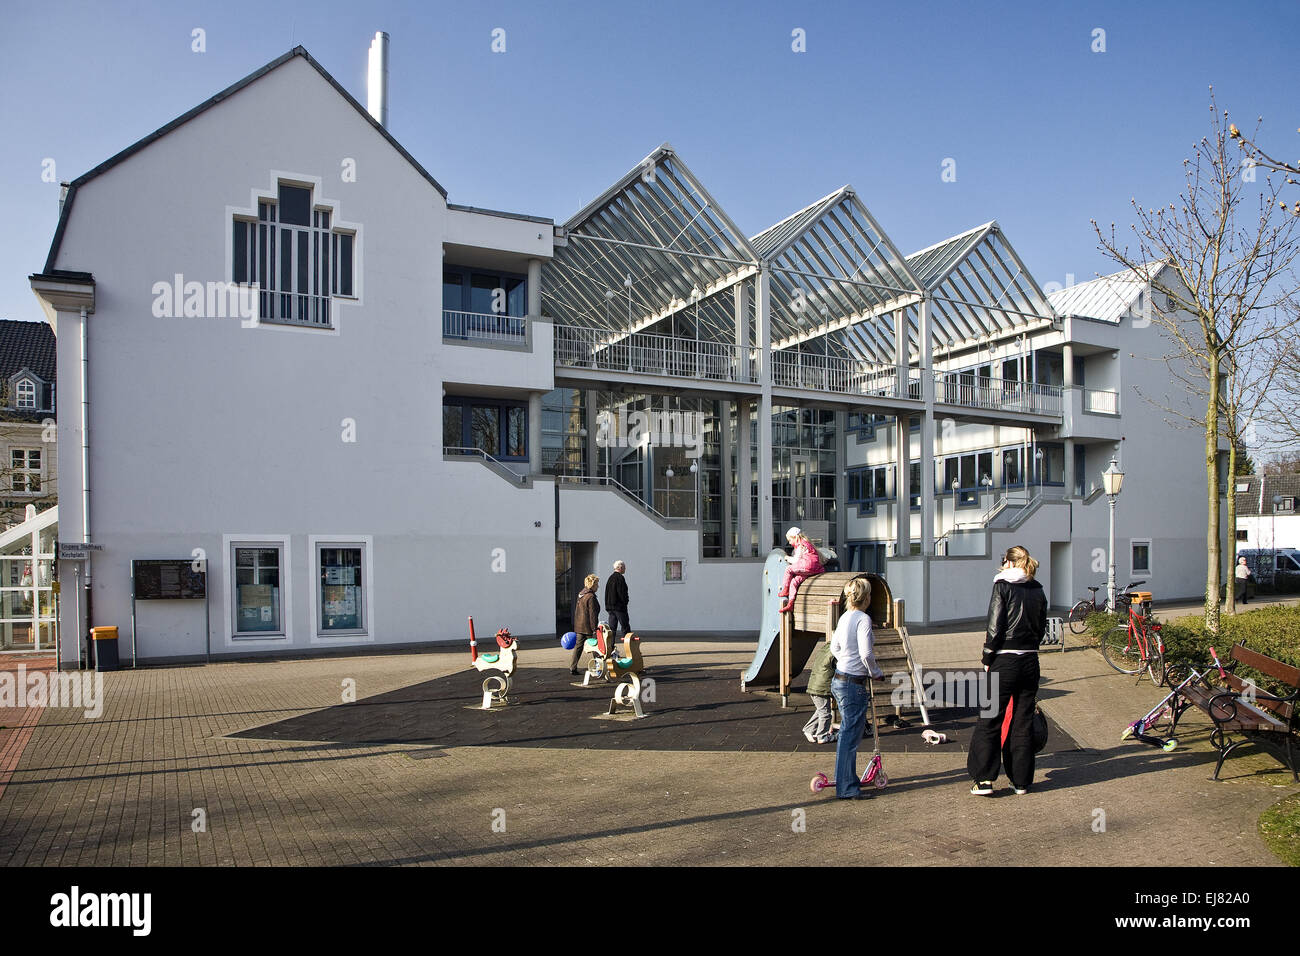 Townhouse, Rheinberg, Germany - Stock Image